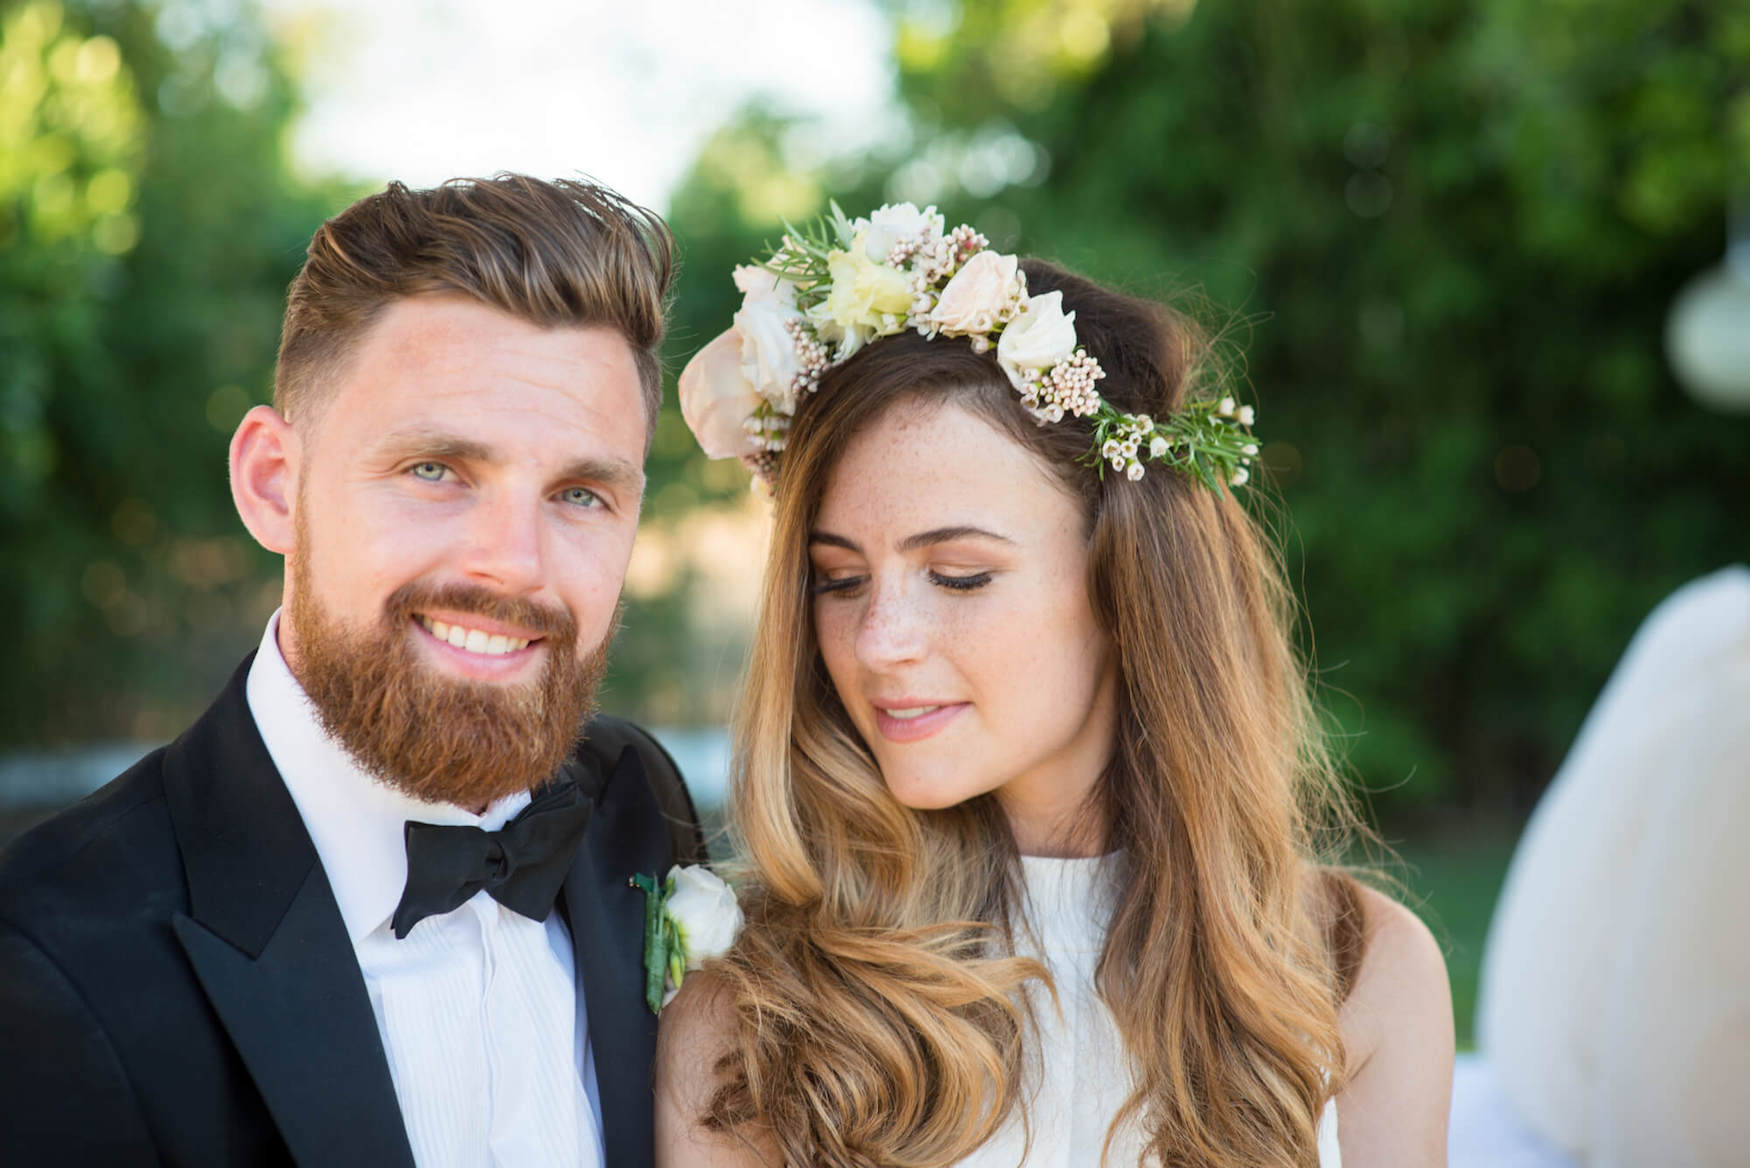 bride groom sunset photo black tie flower crown jenny packham bridal